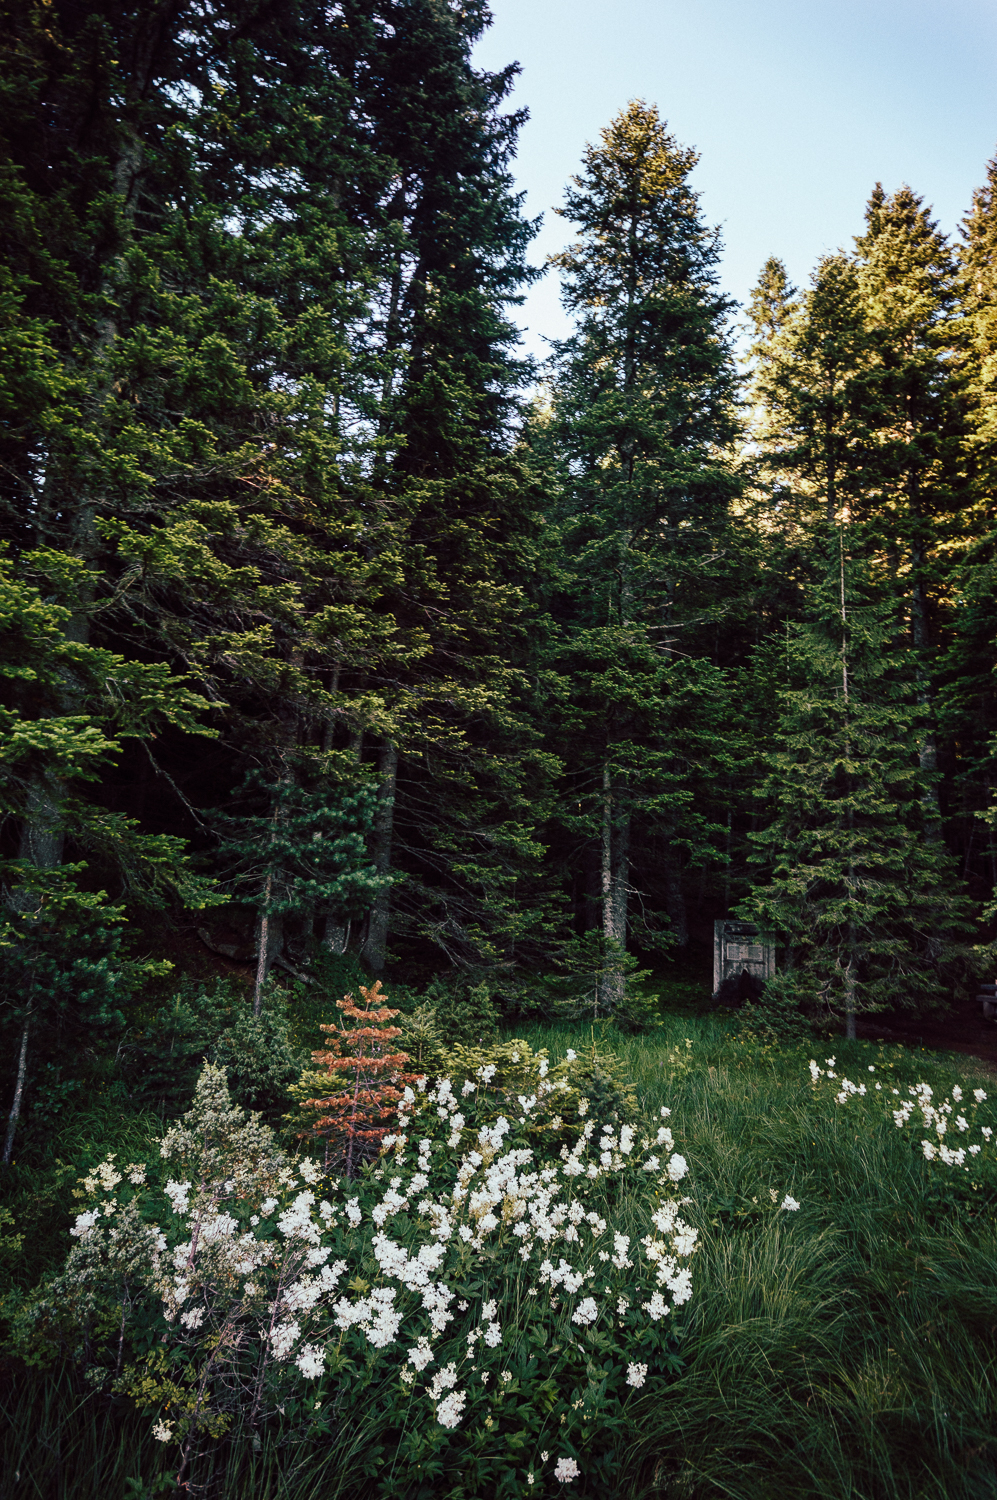 Forest Flowers Limited Edition / $40.00 / Durmitor, Montenegro / 0 of 3 sold